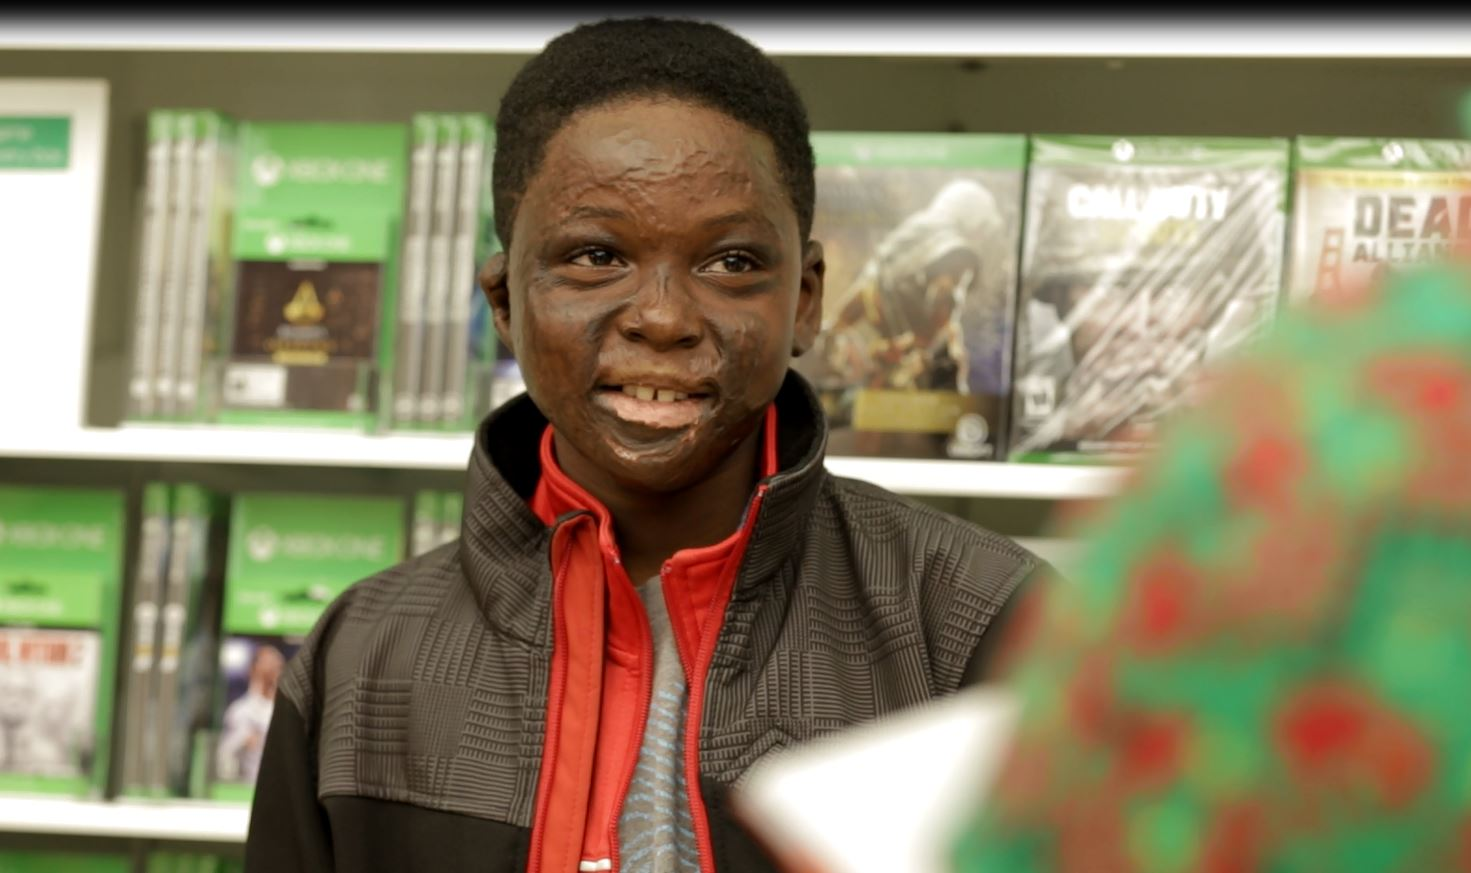 Elijah Anderson picks out games and other devices at the Microsoft Store in Portland. (Courtesy of Microsoft)<p></p>